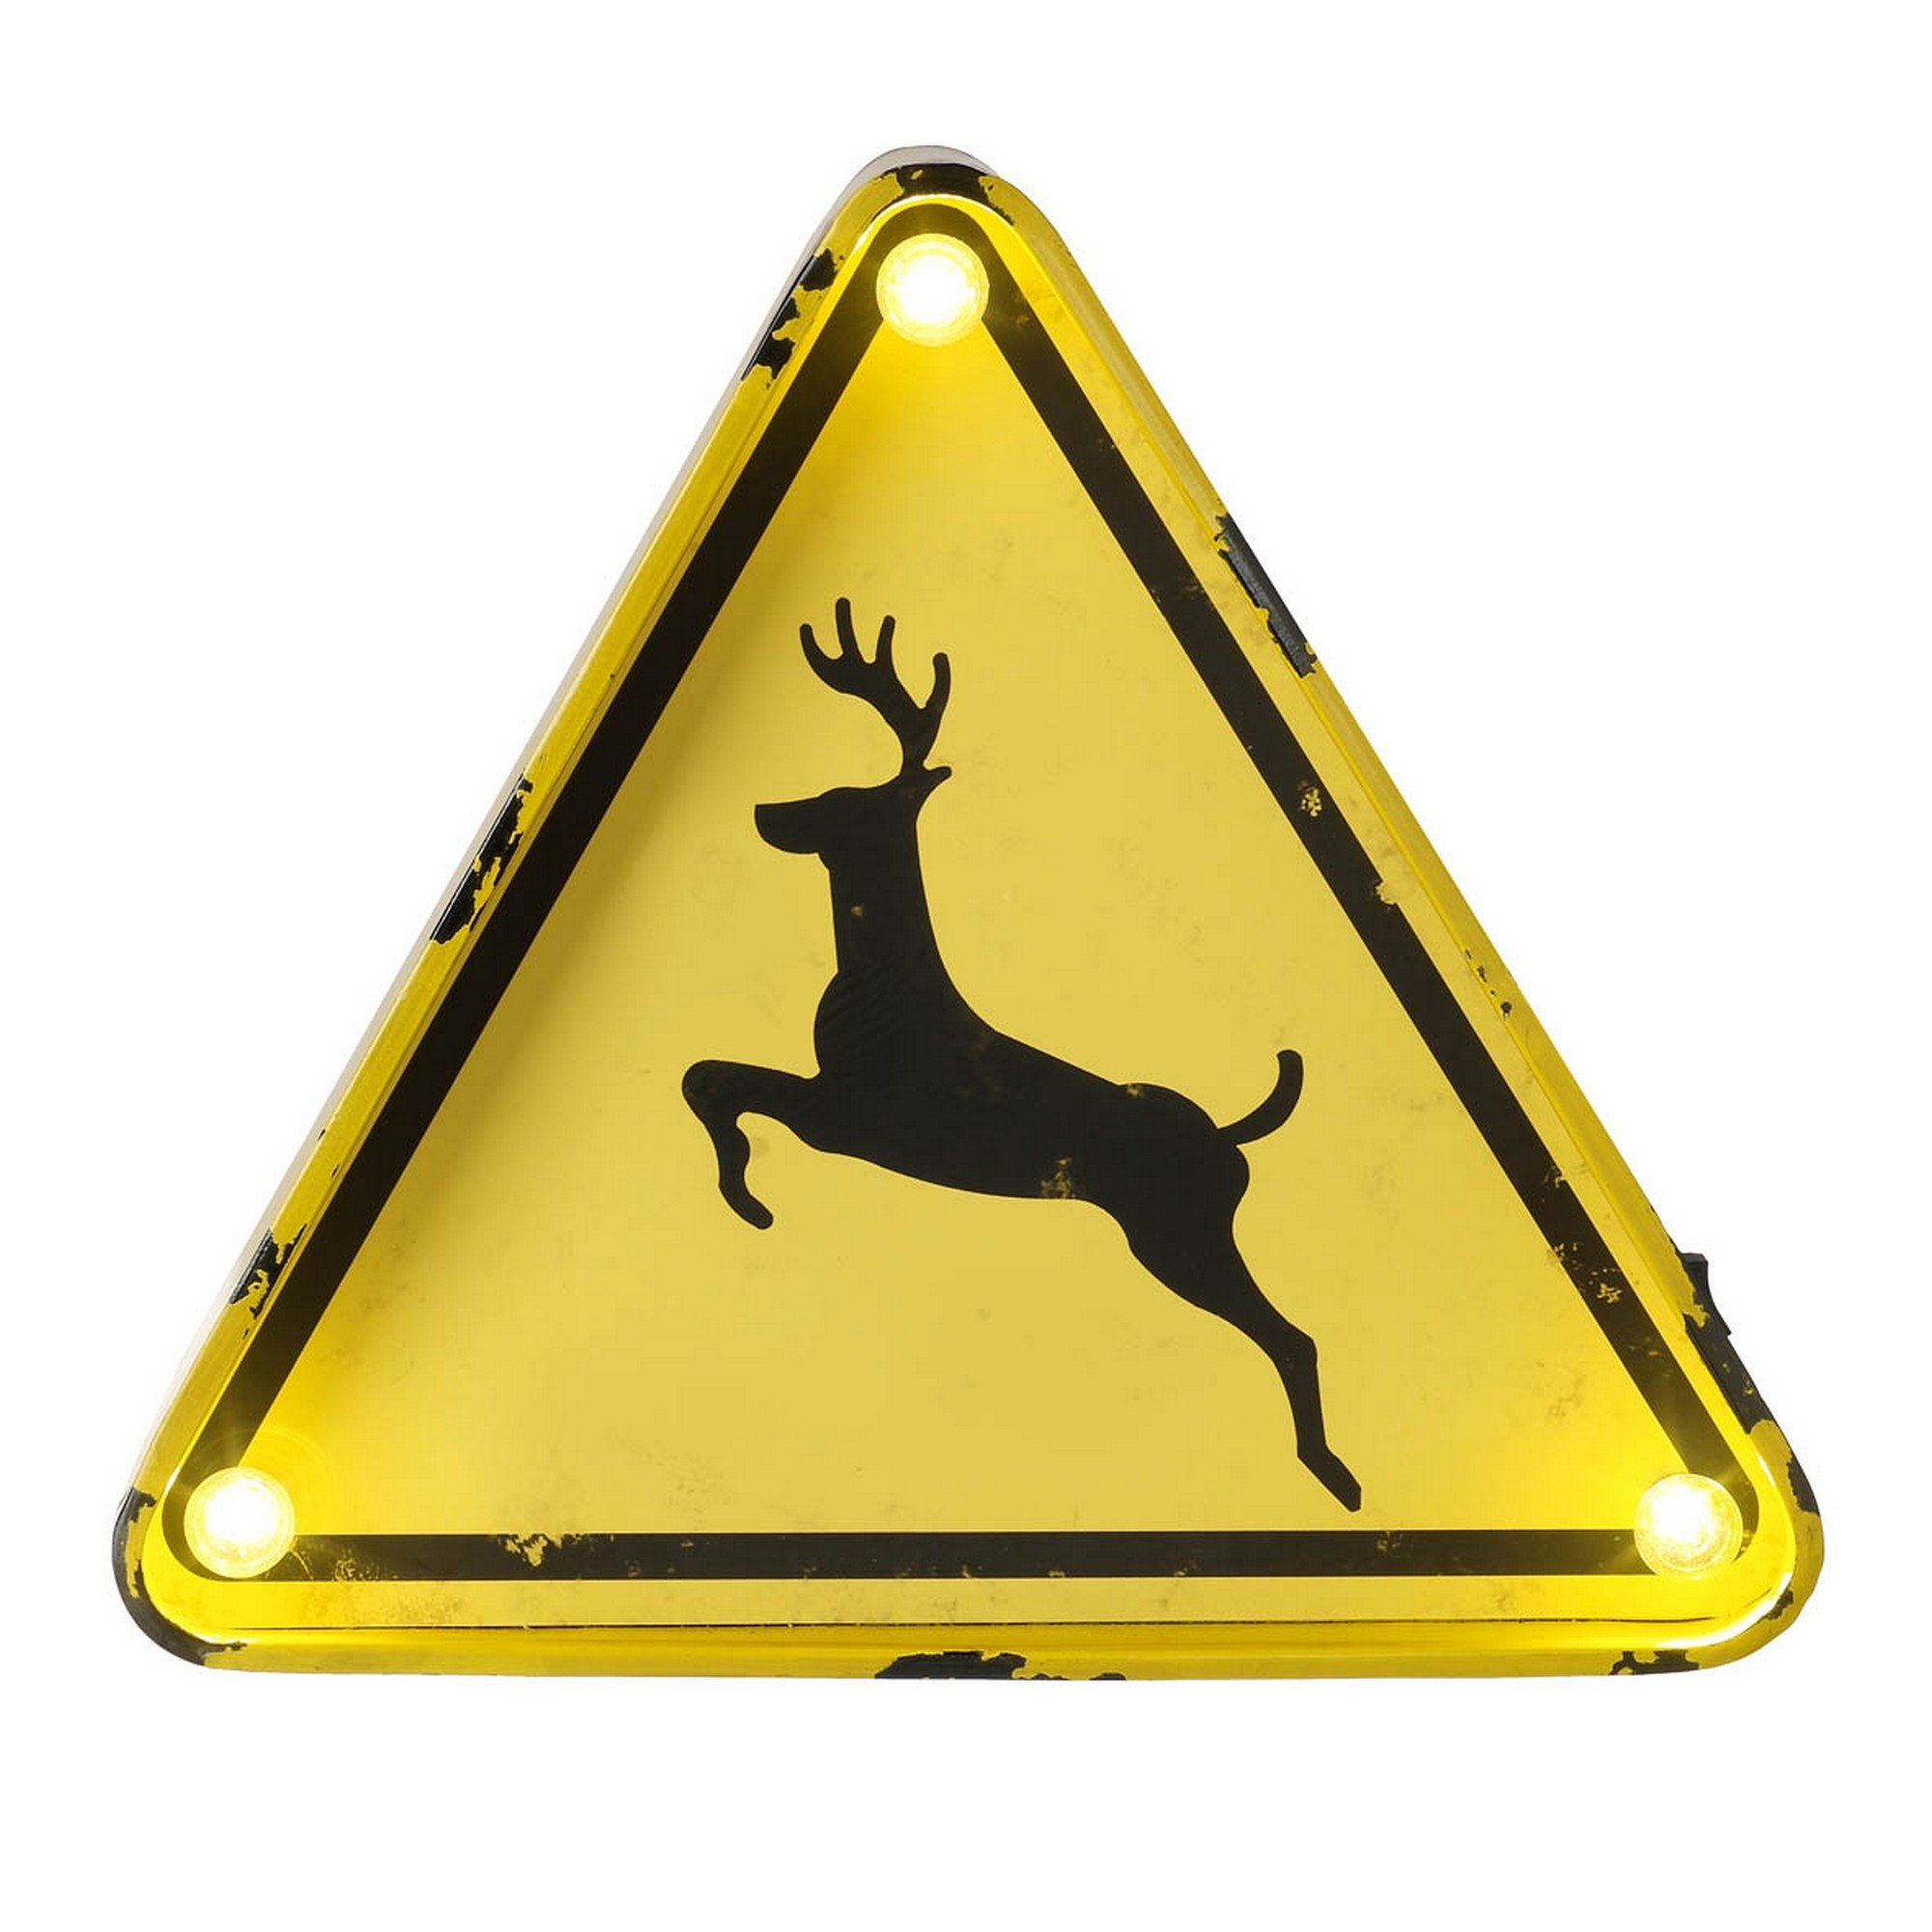 Heaven Sends Deer Crossing LED Sign (11.8 x 2 x 11.8 inches) (Yellow)